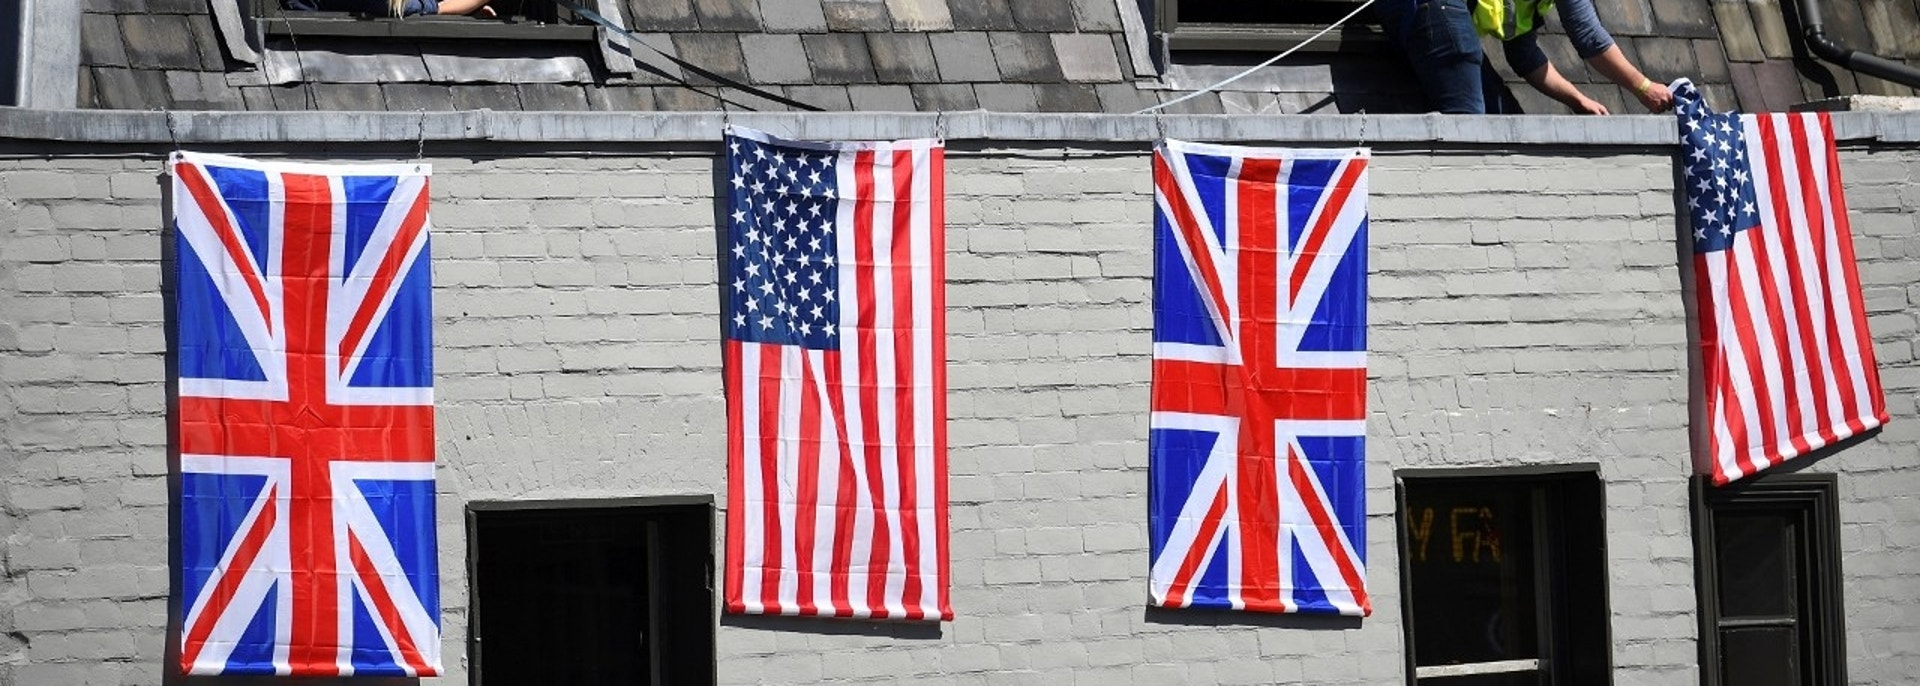 A man hangs U.S. and Union flags ahead of Britain's Prince Harry's wedding to Meghan Markle in Windsor, Britain, May 17, 2018. REUTERS/Dylan Martinez - RC129A020020